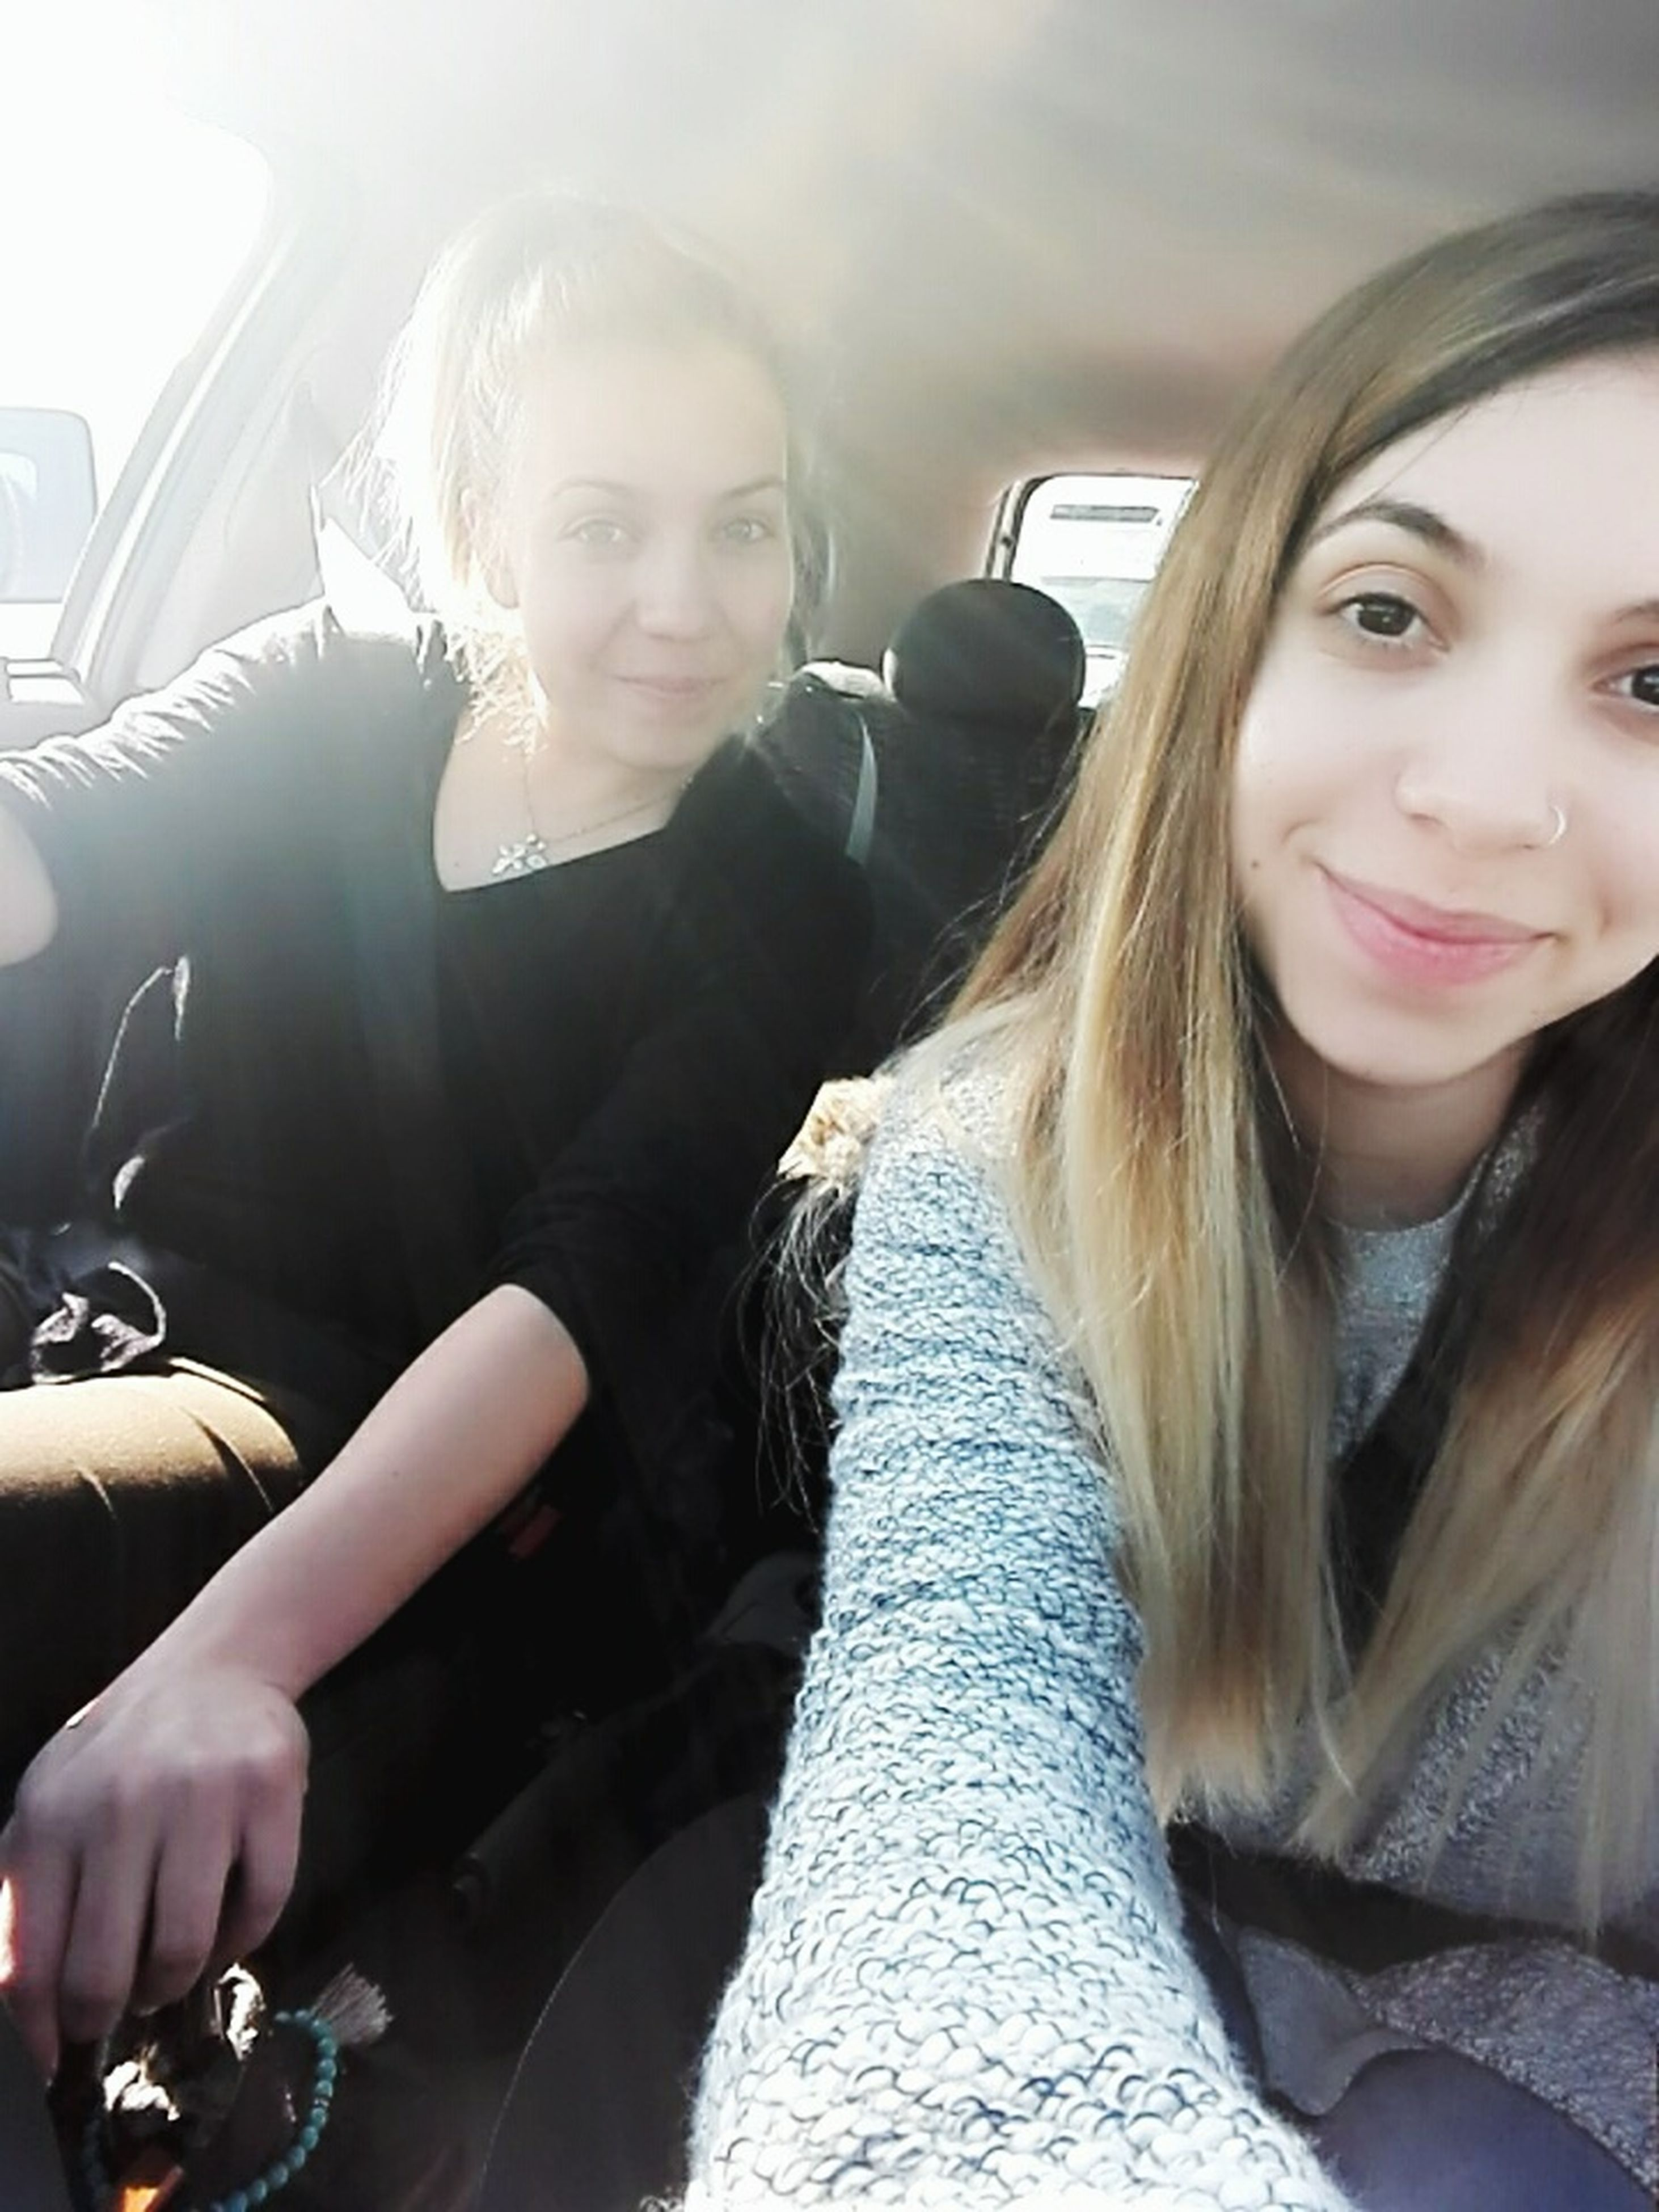 sitting, two people, young women, young adult, togetherness, car, looking at camera, women, vehicle interior, transportation, portrait, adult, beauty, beautiful woman, people, car interior, friendship, smiling, happiness, bonding, adults only, human leg, indoors, day, fame